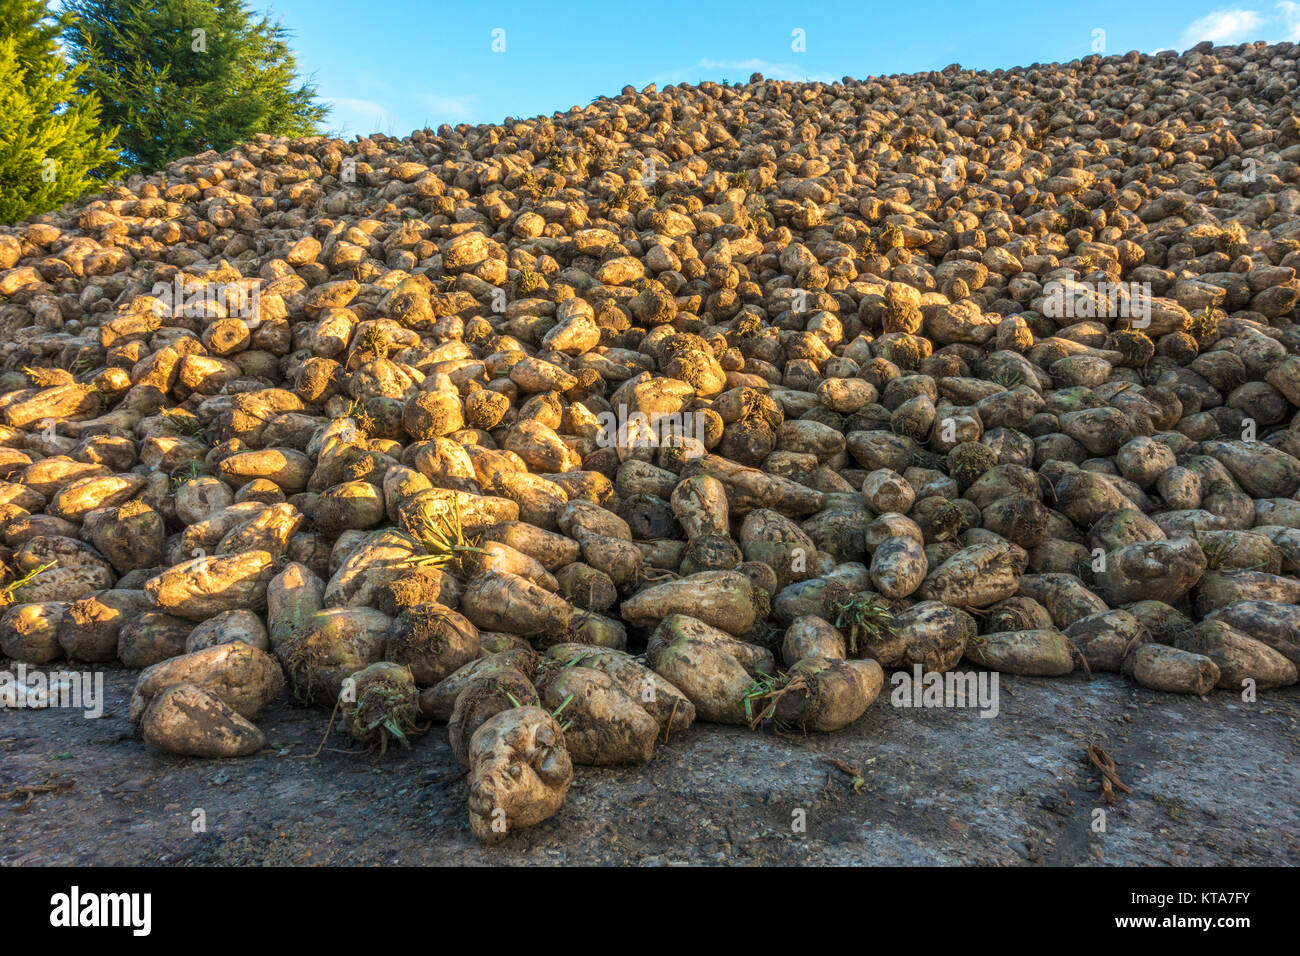 A heap of mature sugar beet plants, newly harvested in autumn, picking up the early morning sunlight, in rural Lincolnshire, - Stock Image